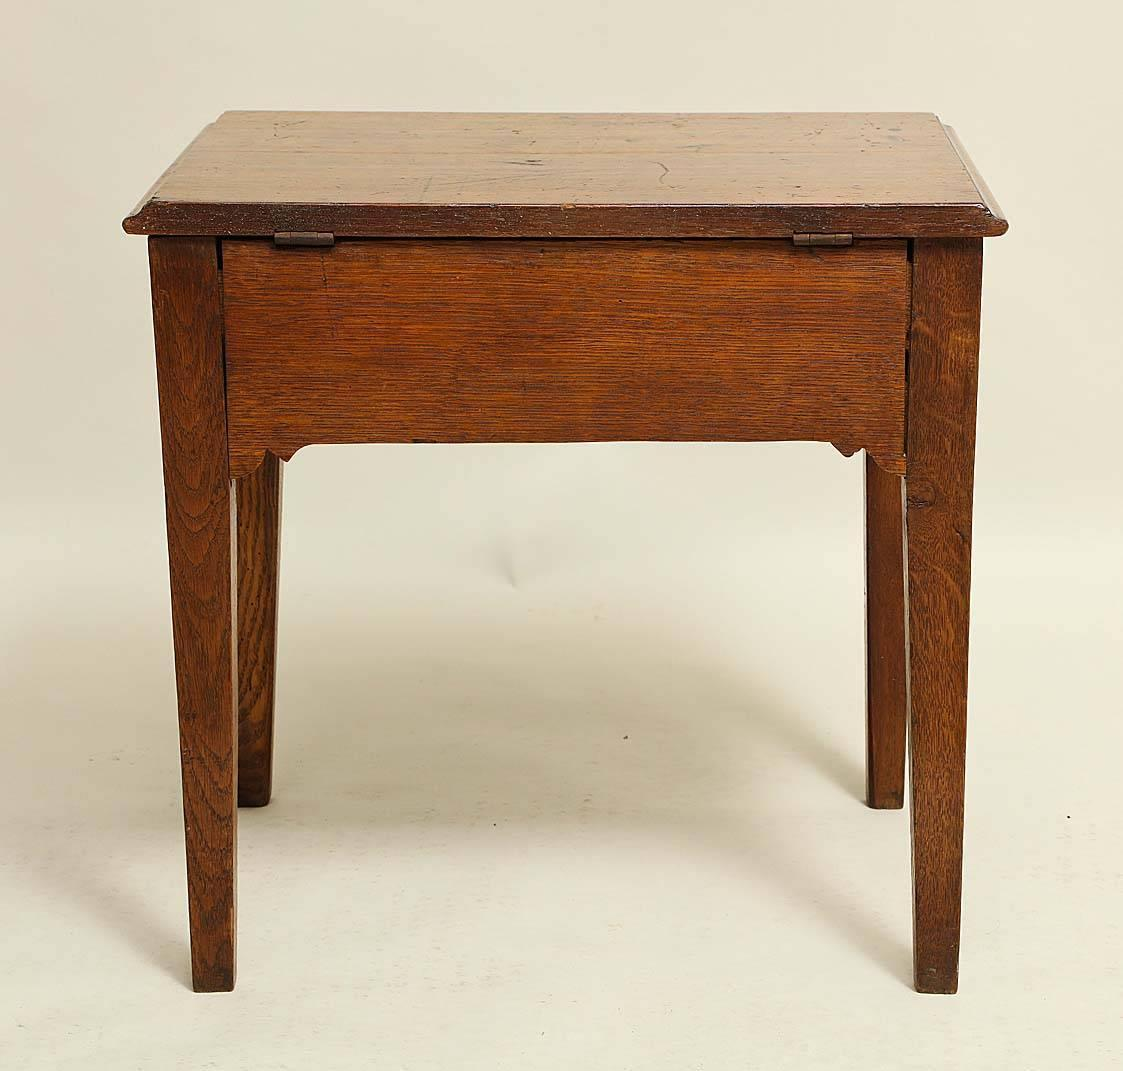 Low Tables For Sale English Oak Low Table For Sale At 1stdibs